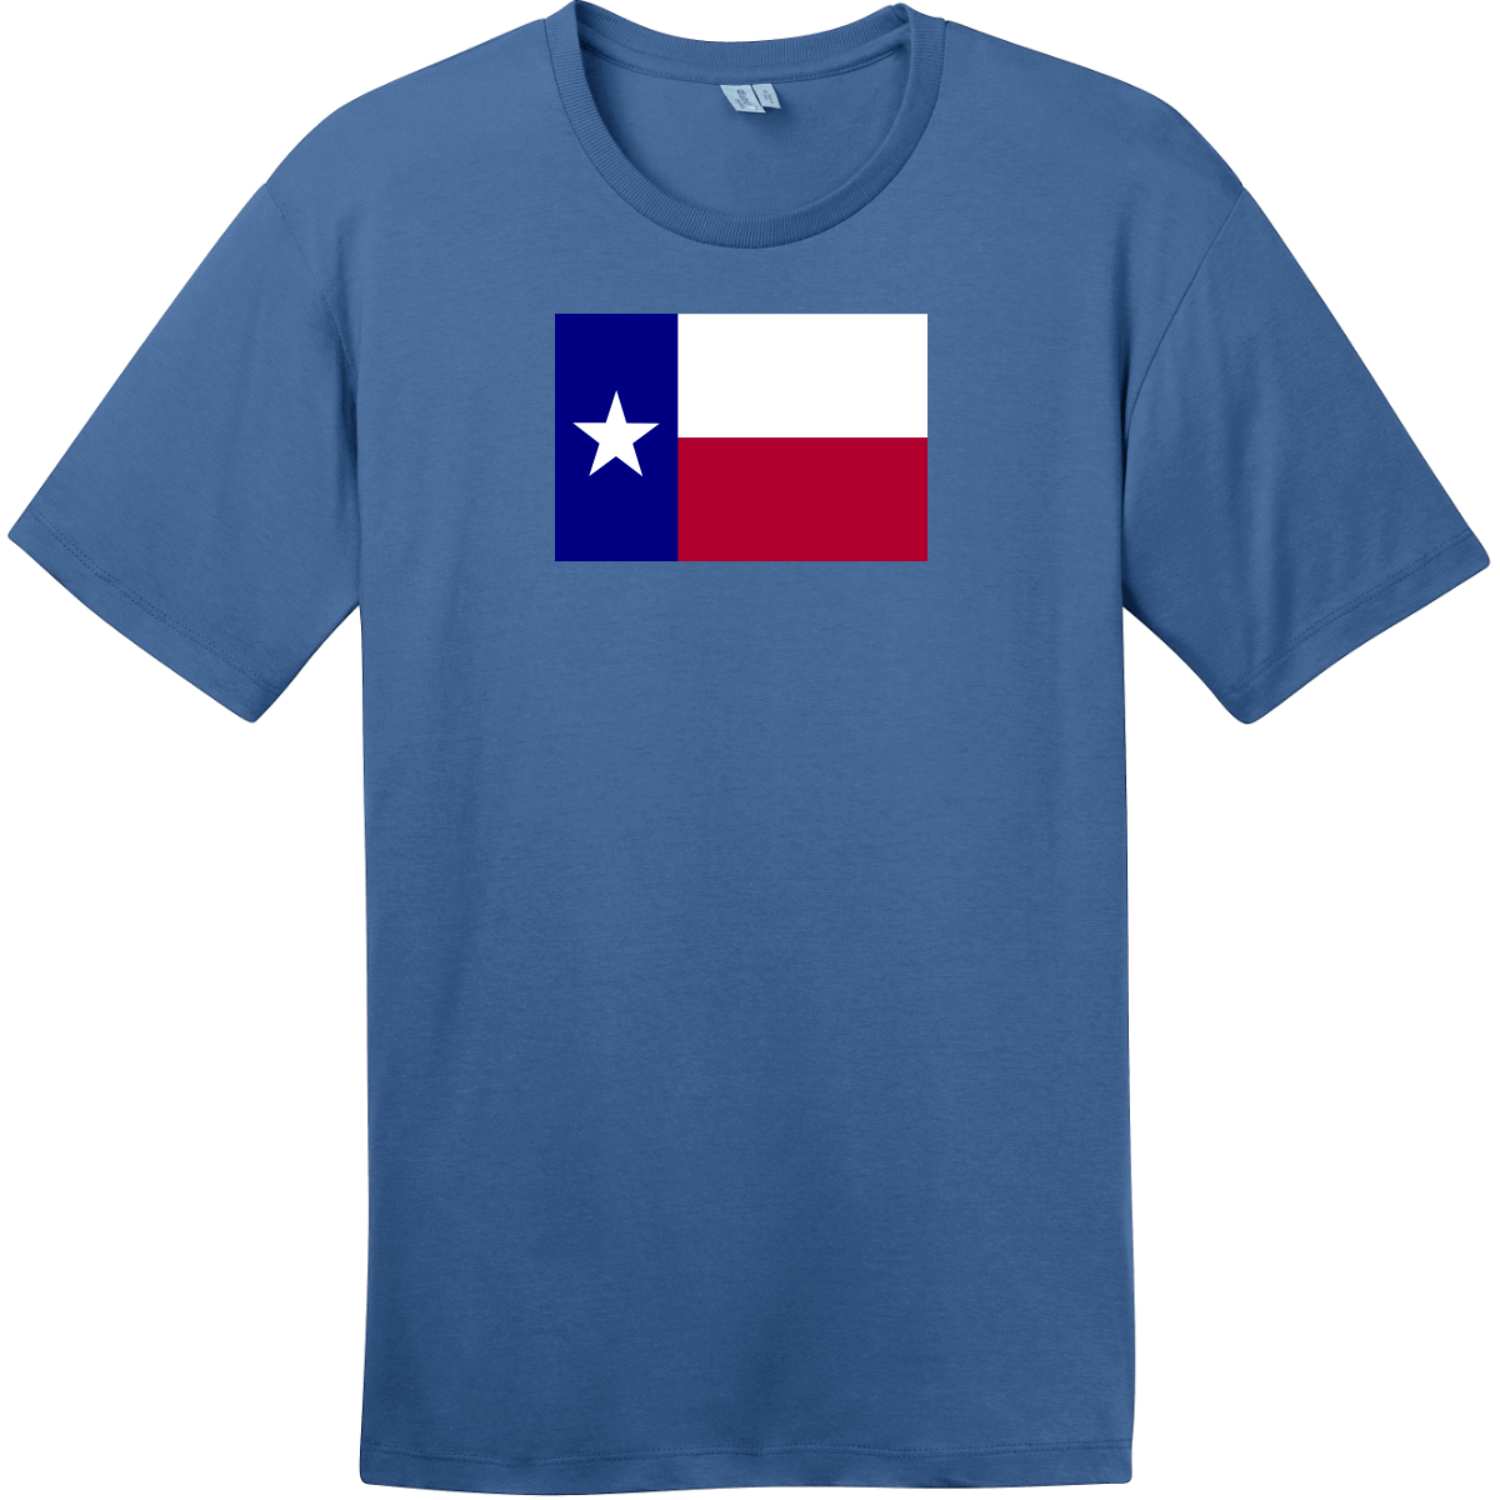 Texas Lone Star State Flag T-Shirt Maritime Blue District Perfect Weight Tee DT104